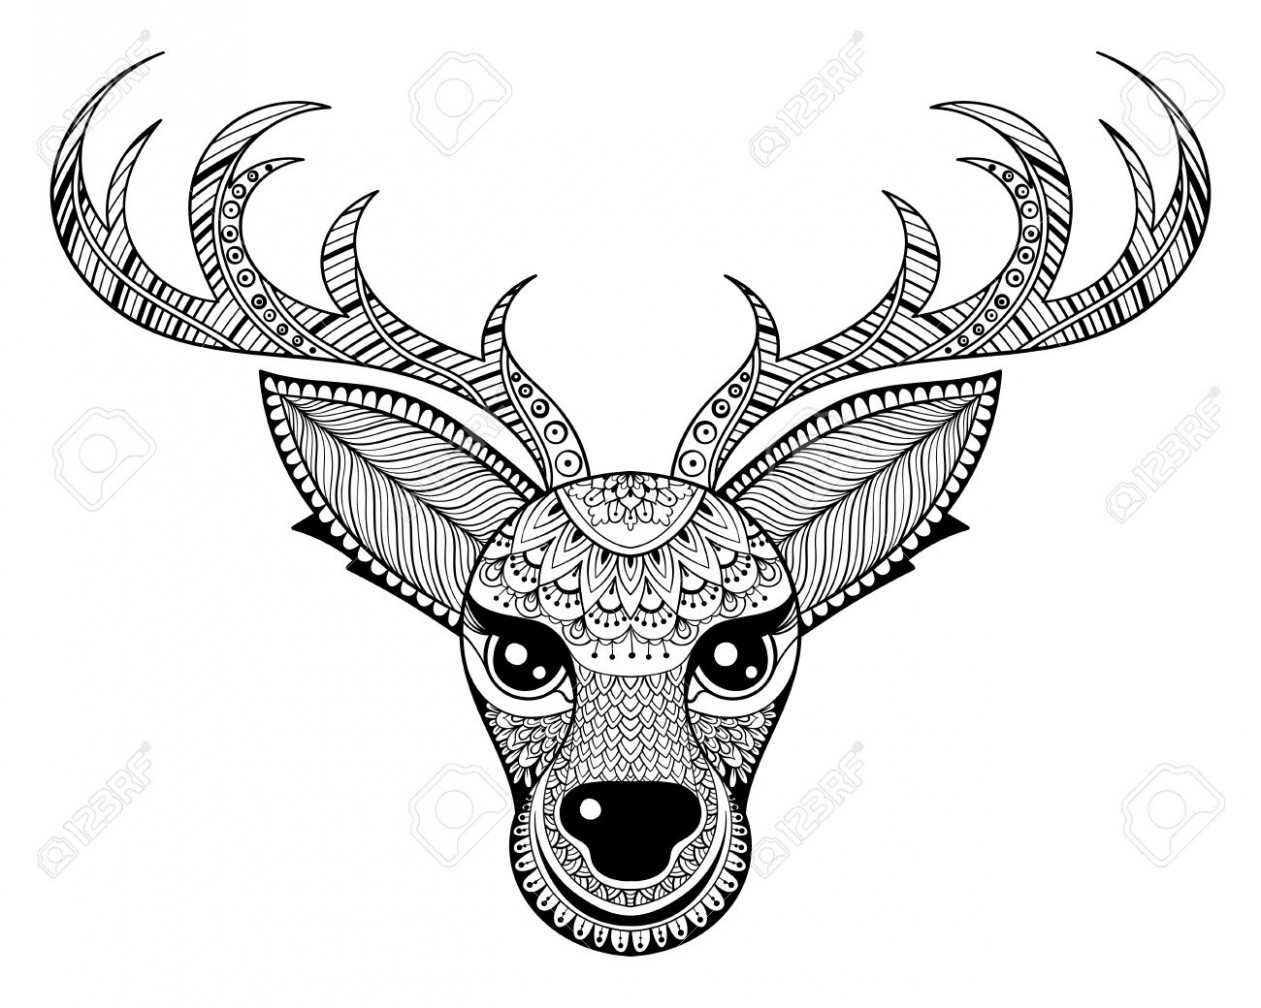 Zentangle Vector Reindeer For Adult Anti Stress Coloring Pages ..